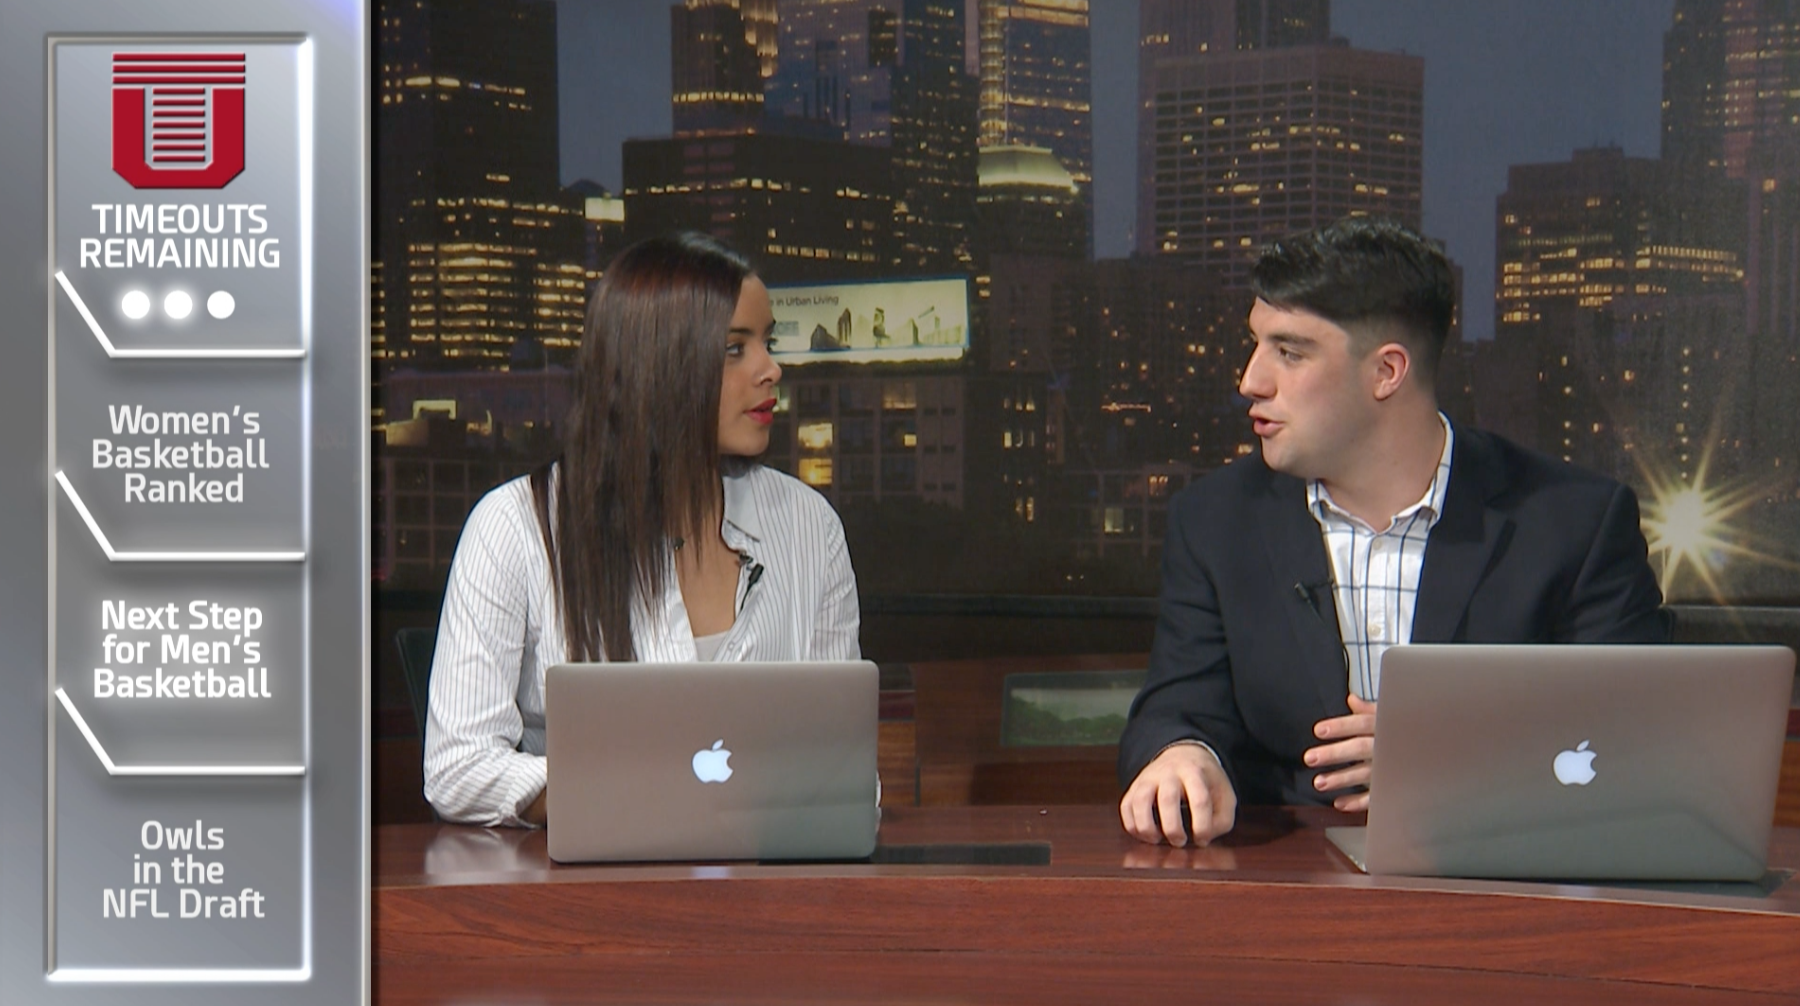 Temple Timeout: The SportsDesk's New Webisode Series